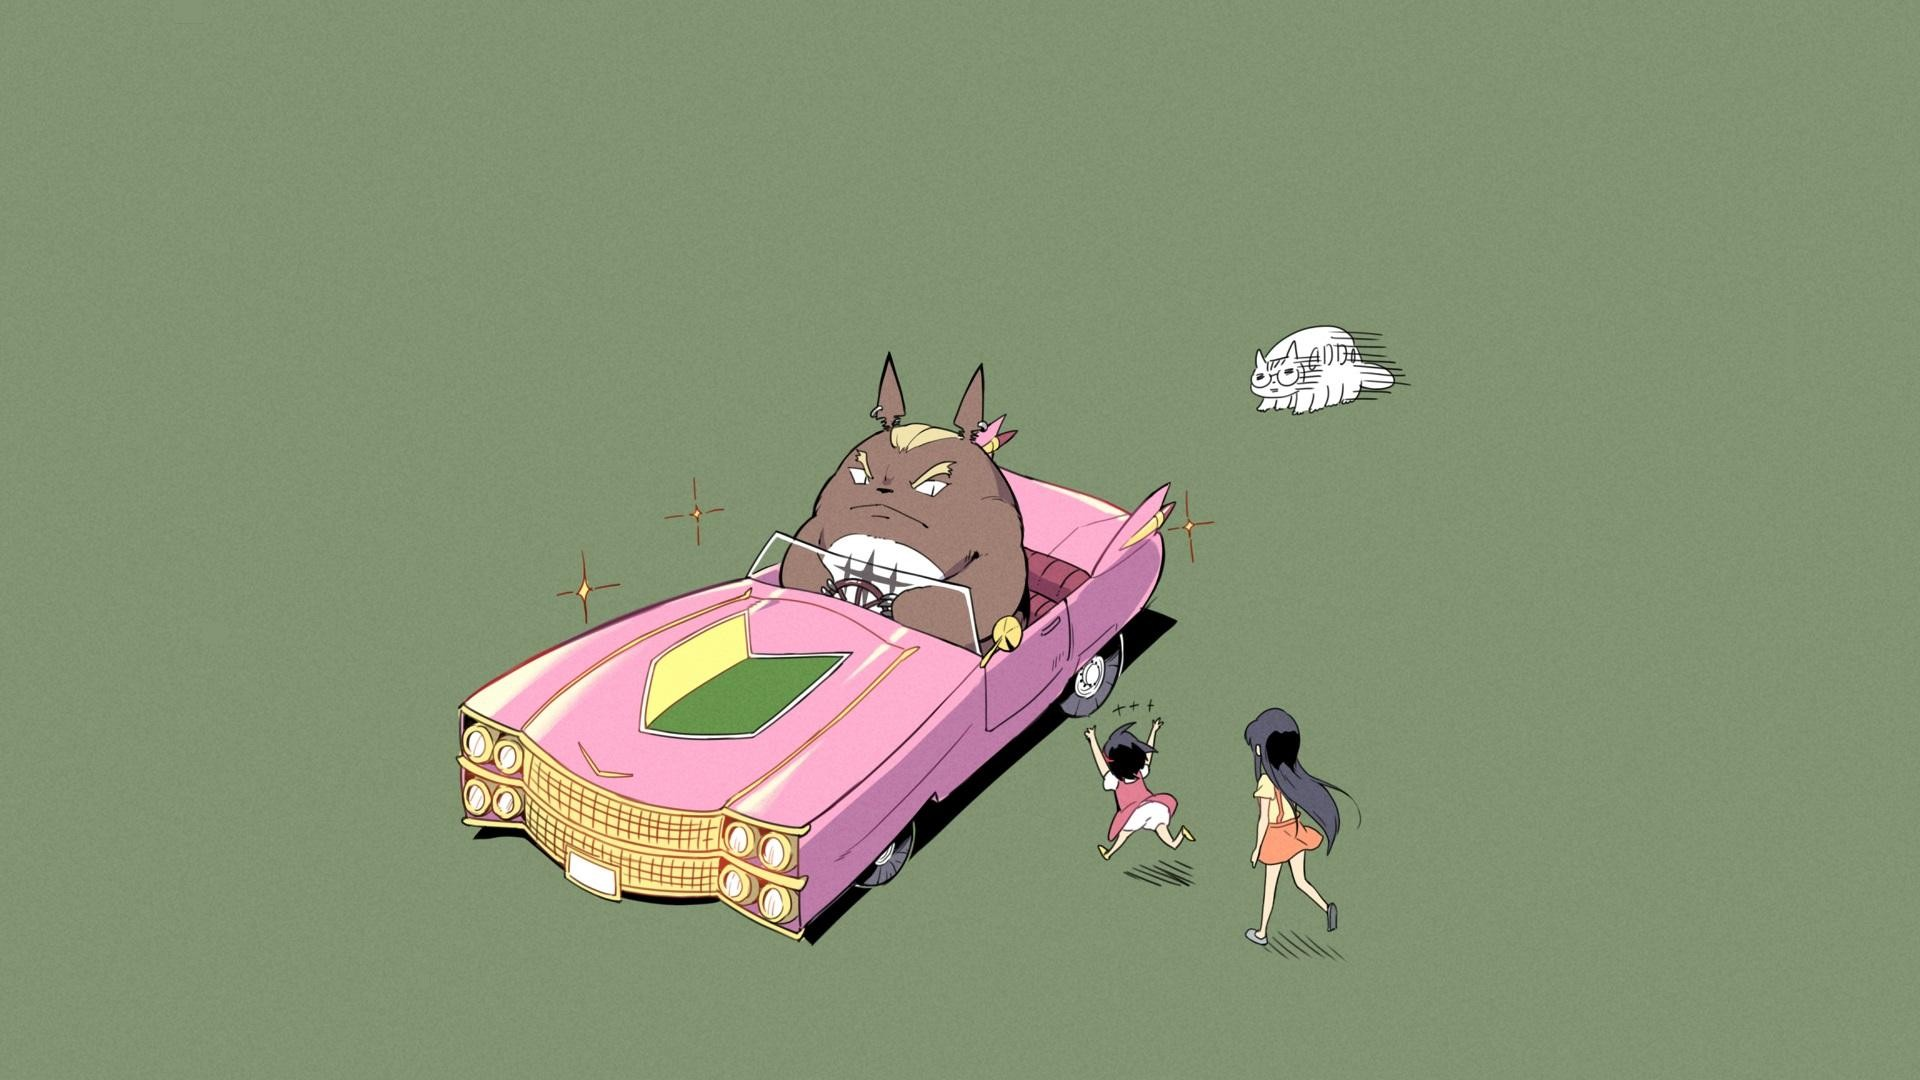 1920x1080 My Neighbor Totoro Wallpapers Hd